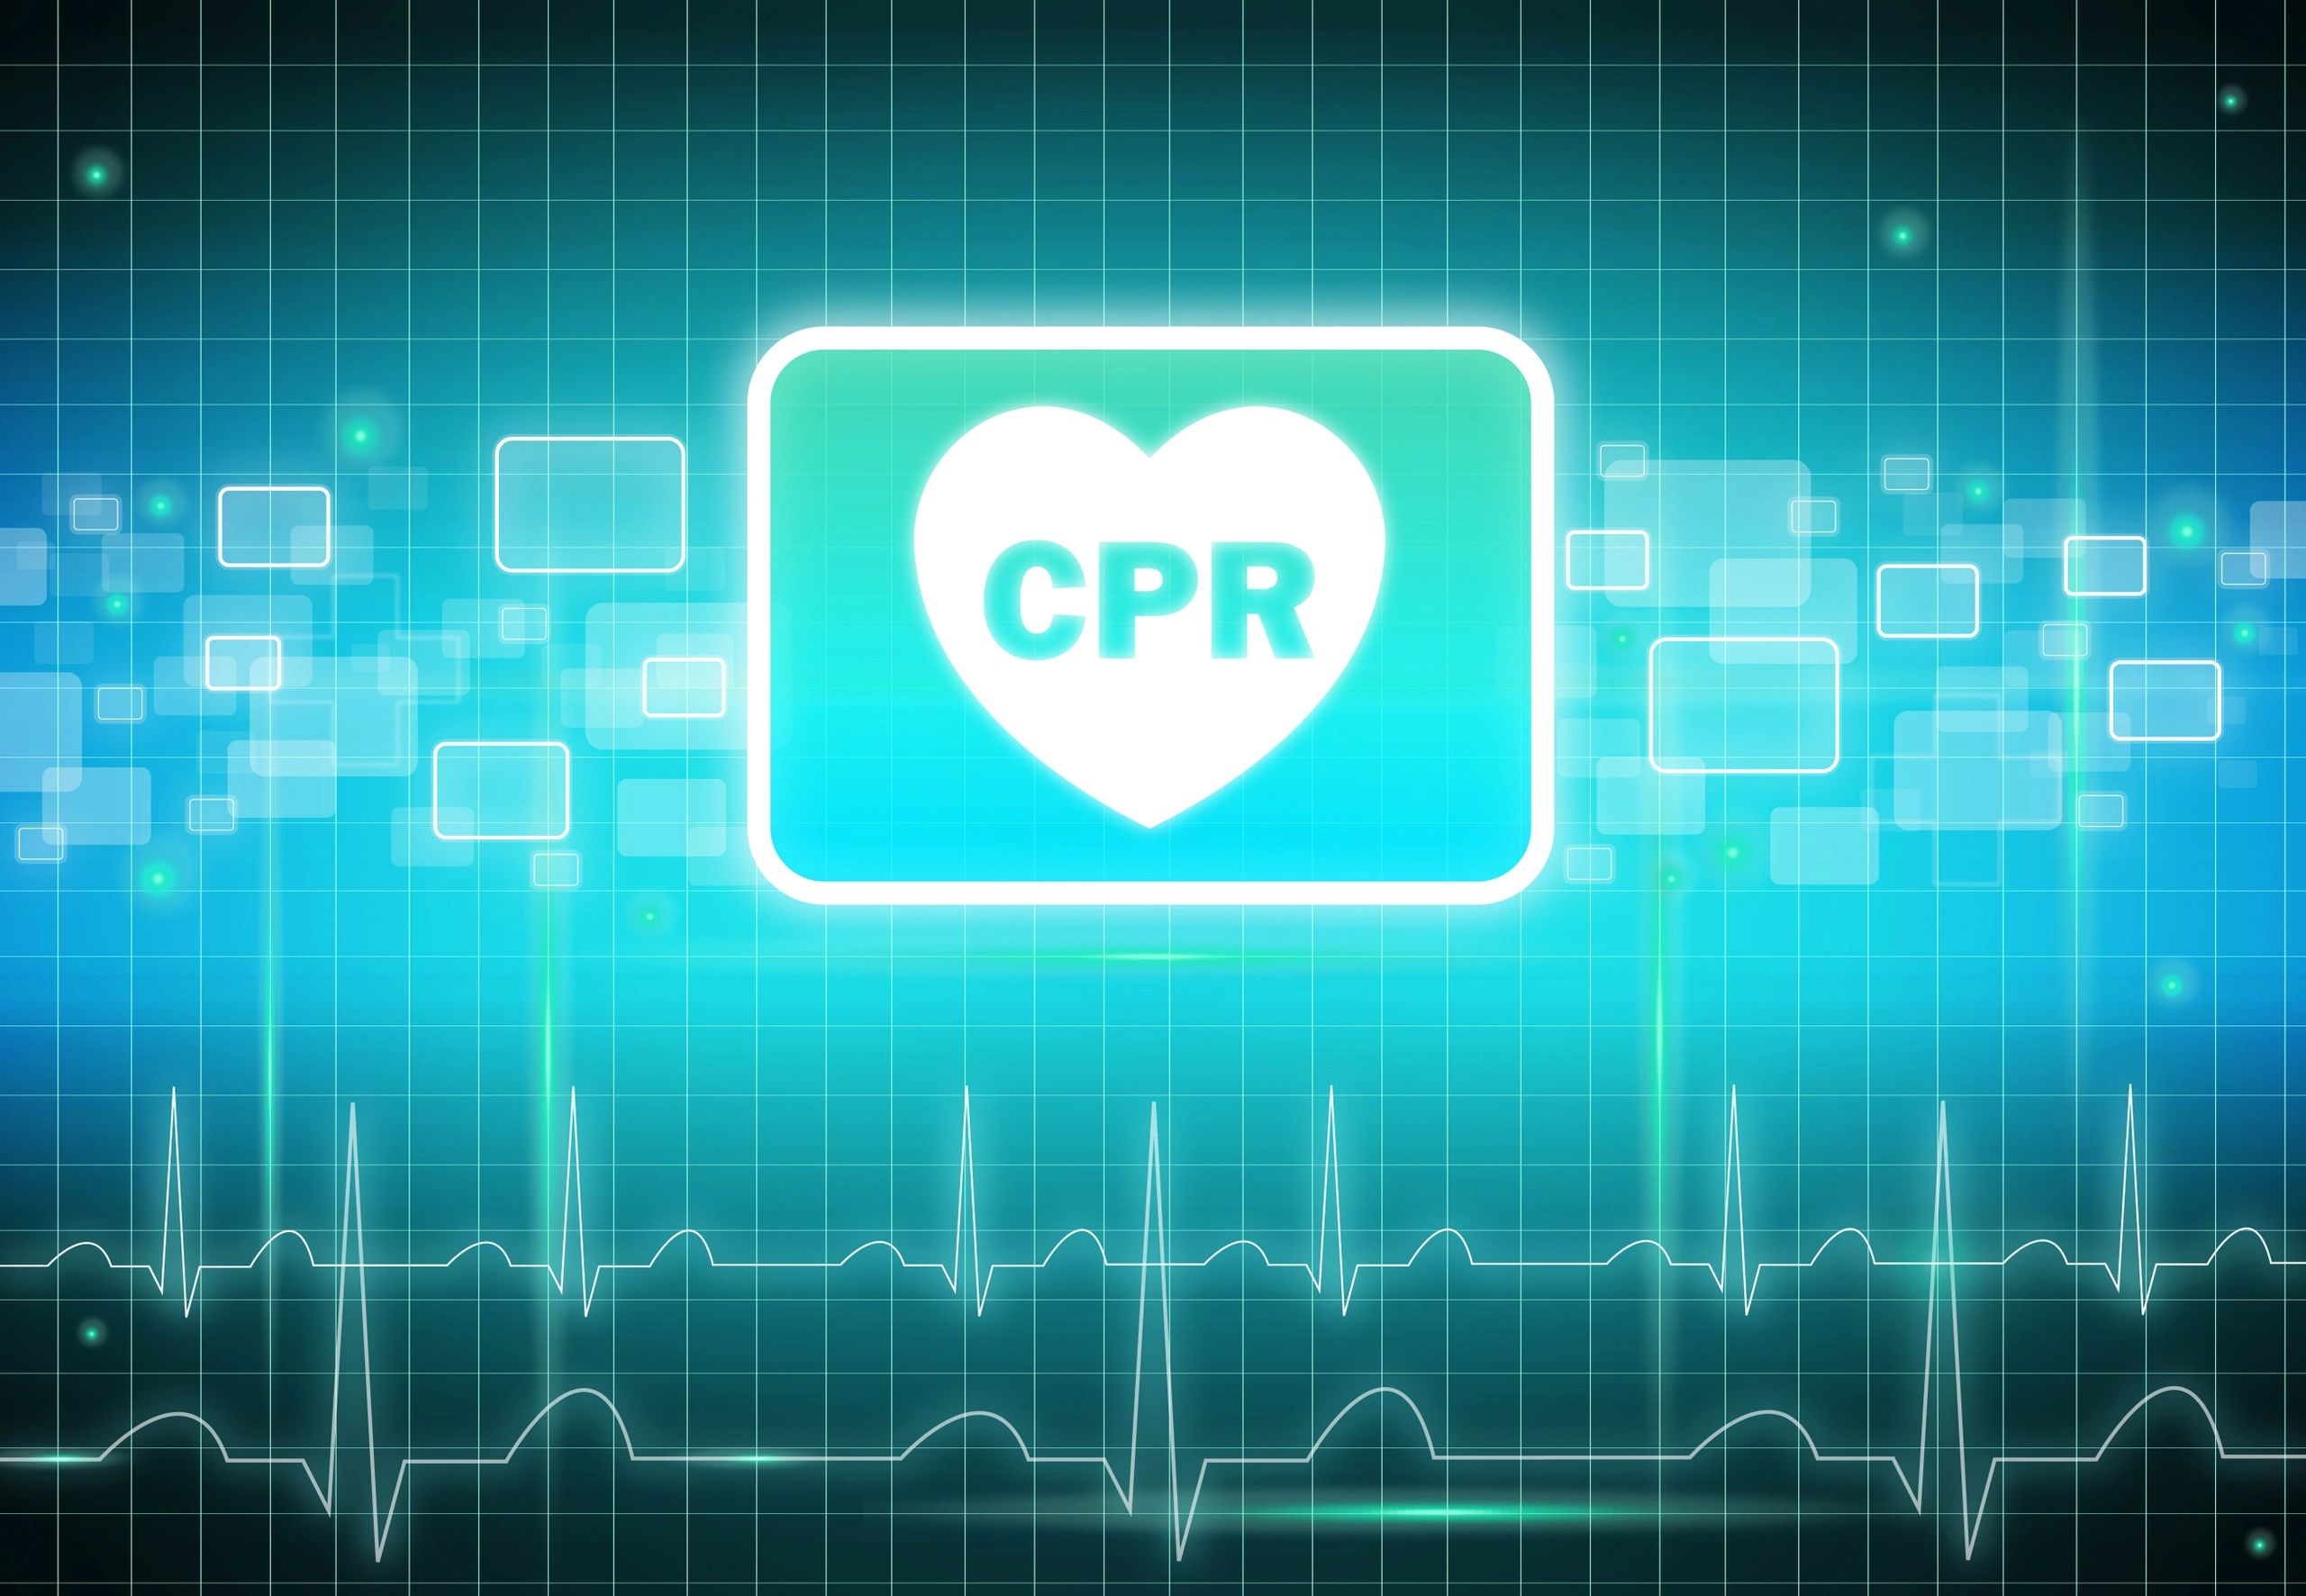 Cpr Plus More Cpr Certification First Aid Training